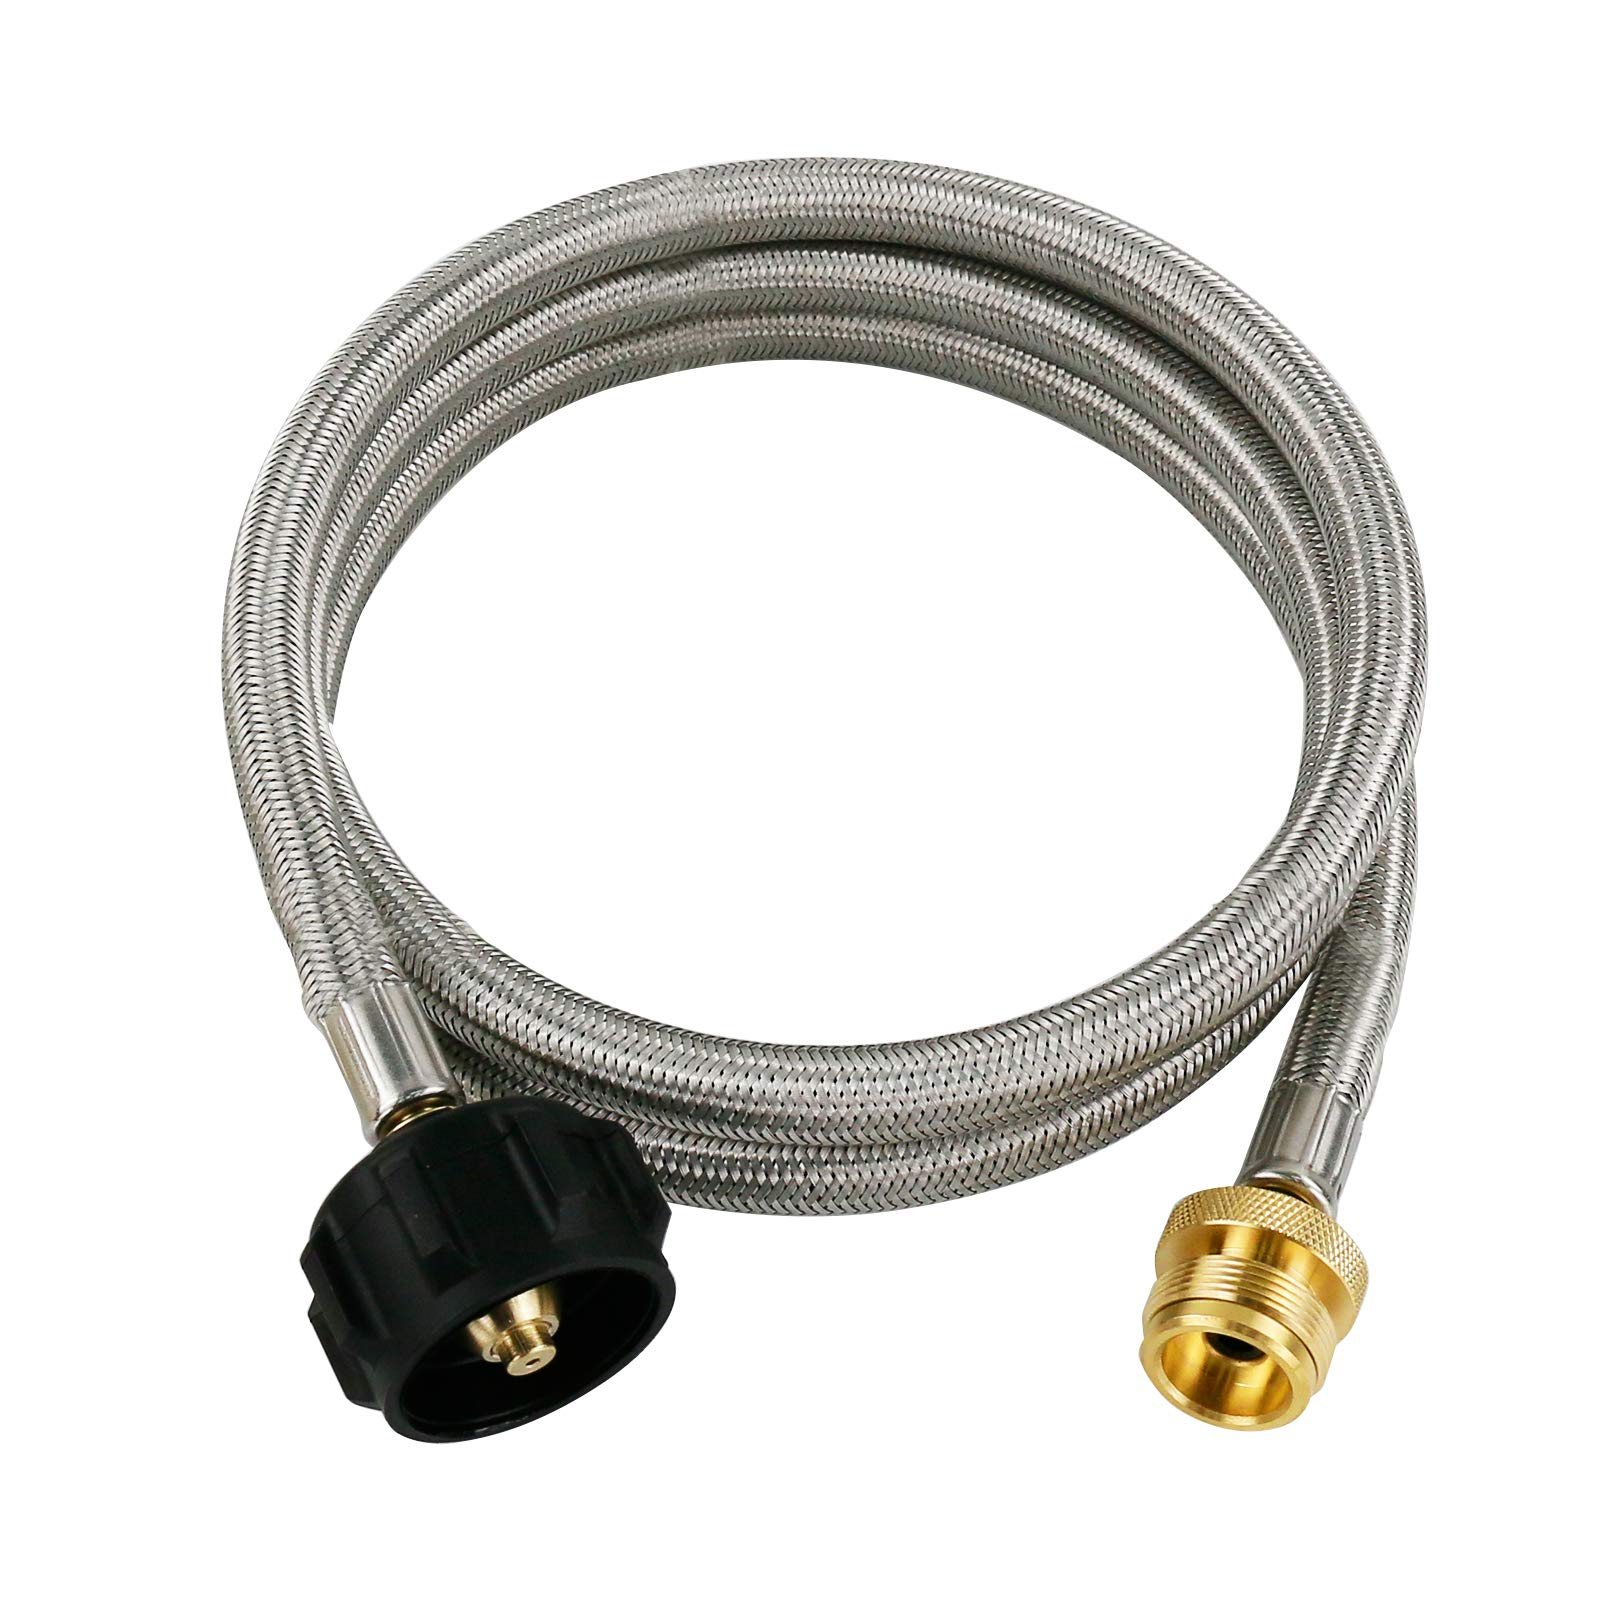 Uniflasy 5FT Propane Stainless Braided Hose Adapter, Camp Propane Tank Converter, 1lb to 20lb Connects Propane Adapter for Grill, Griddle, Camping Stove, Heater and More Portable Appliances LP Tank